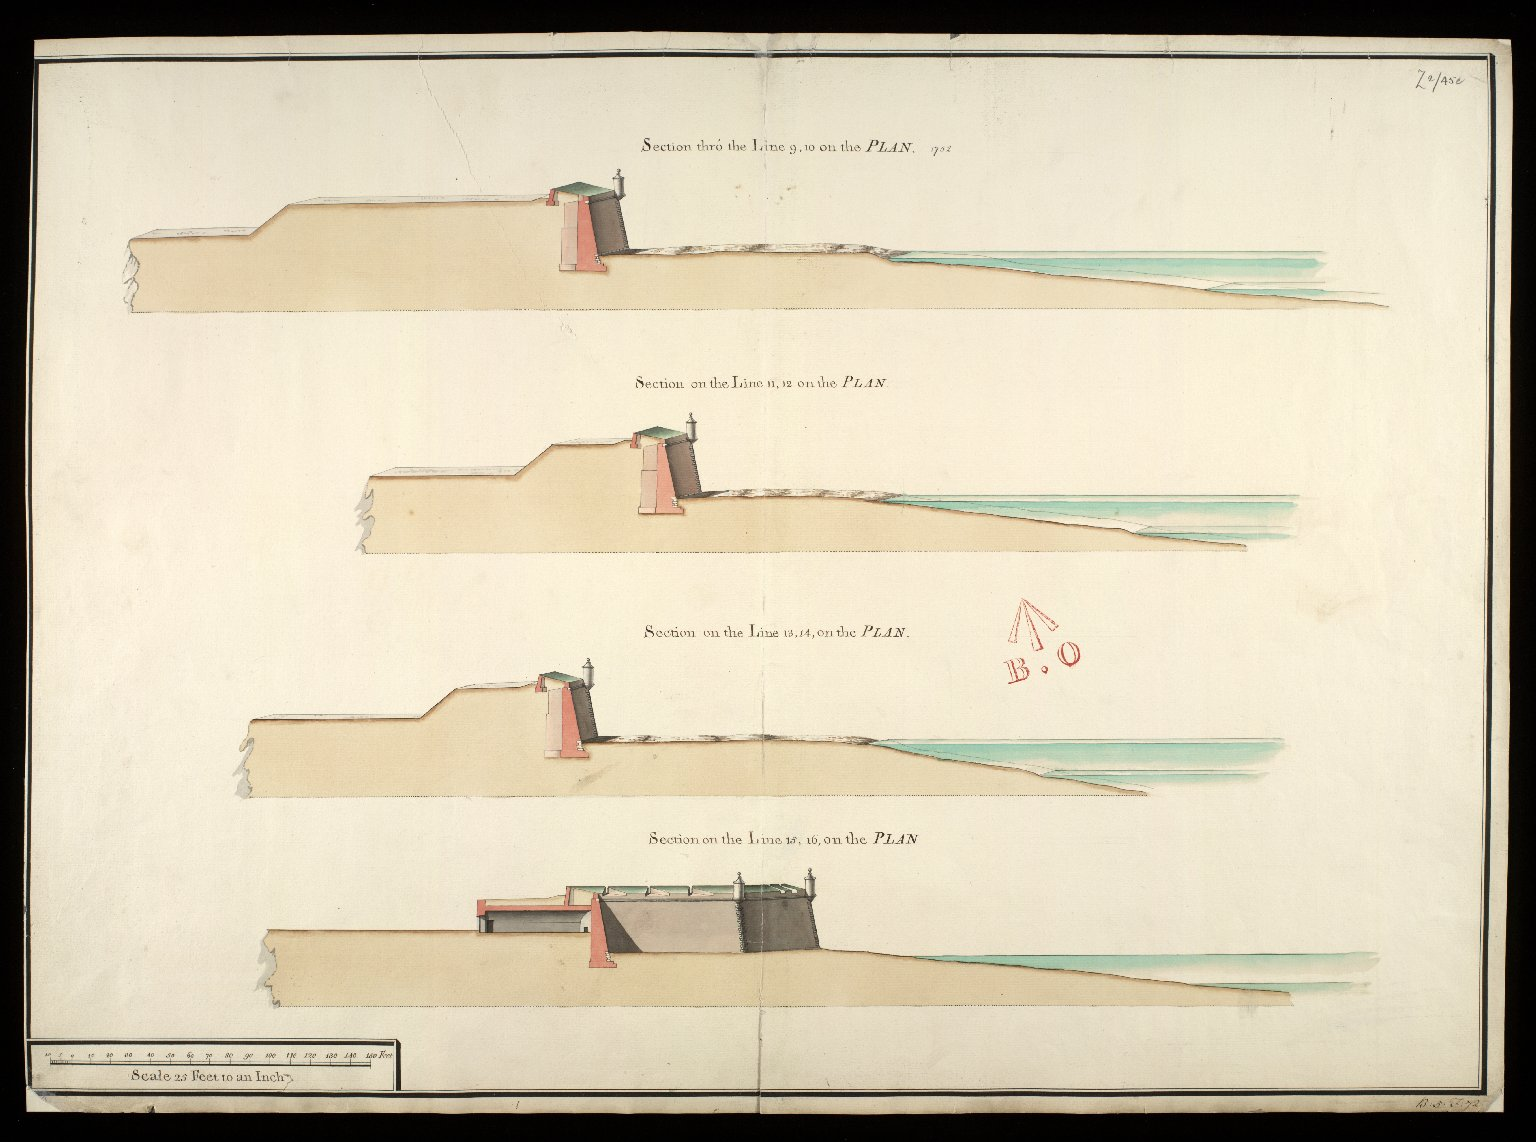 [Fort George, North Britain, 1752] : section thro' line 9.10 on the plan; section thro' line 11.12 on the plan; section thro' line 13.14 on the plan [1 of 1]